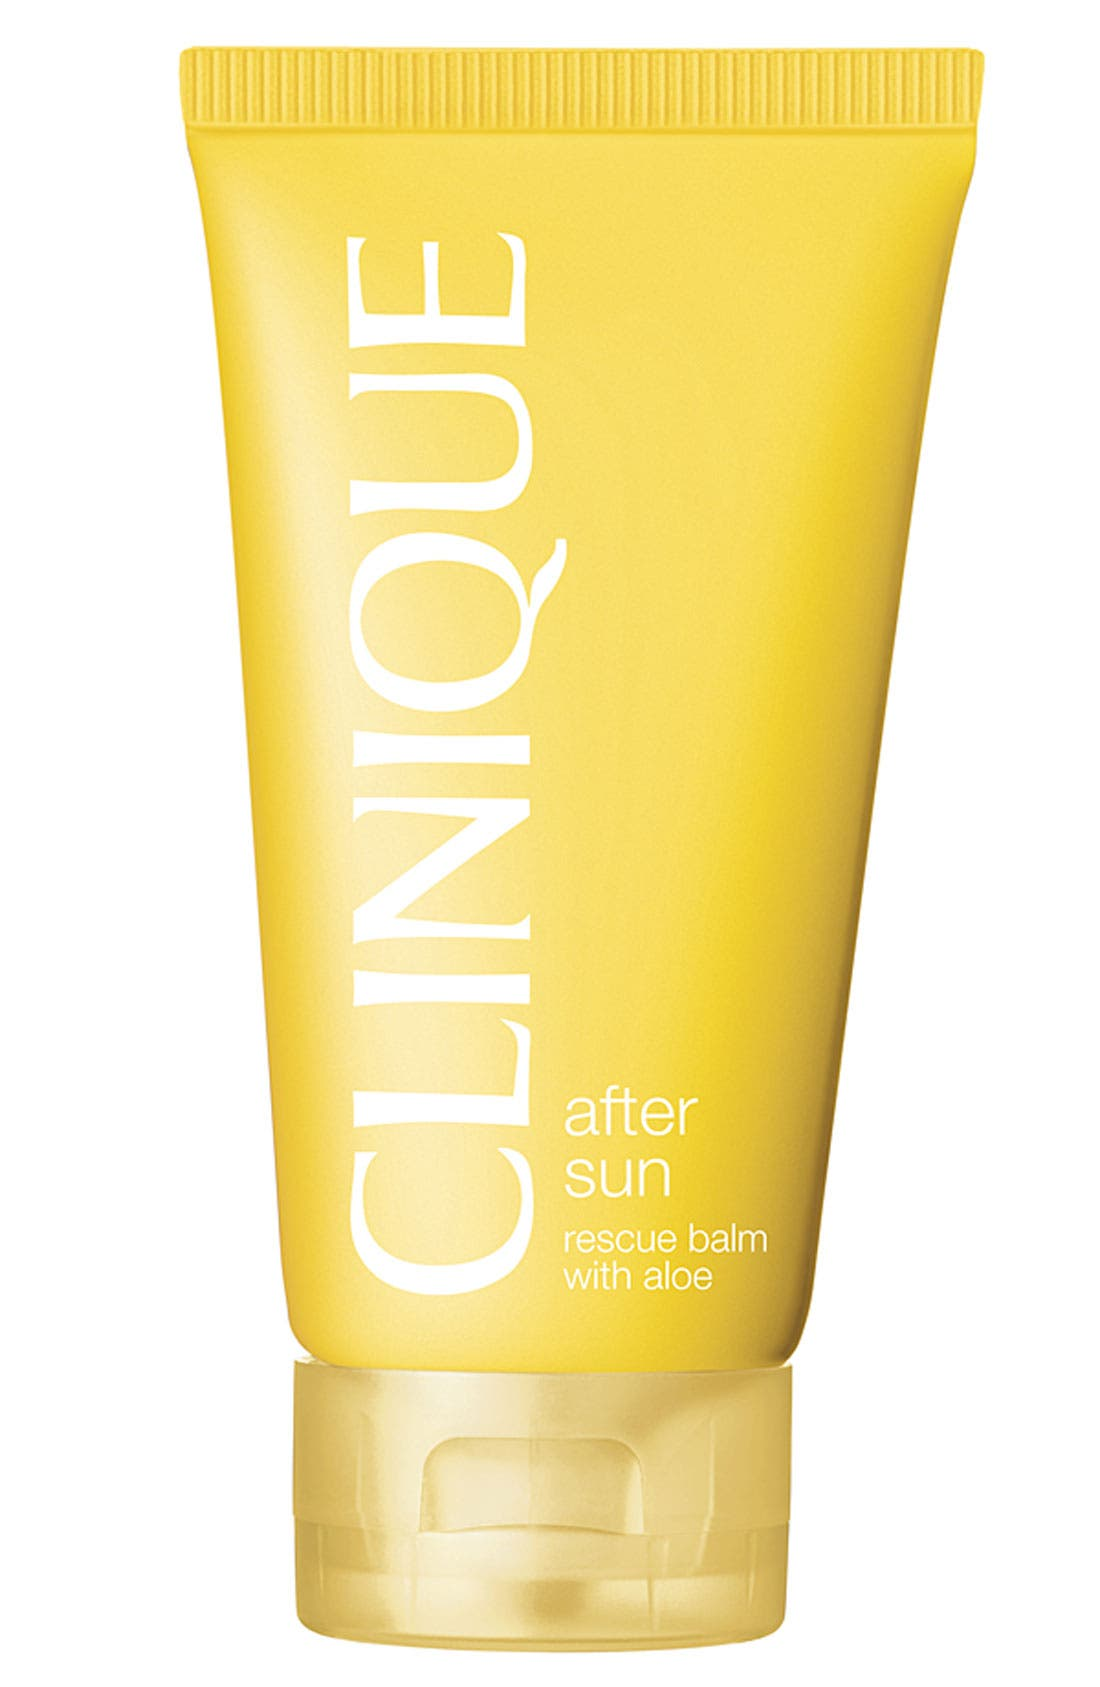 Clinique 'After Sun' Rescue Balm with Aloe